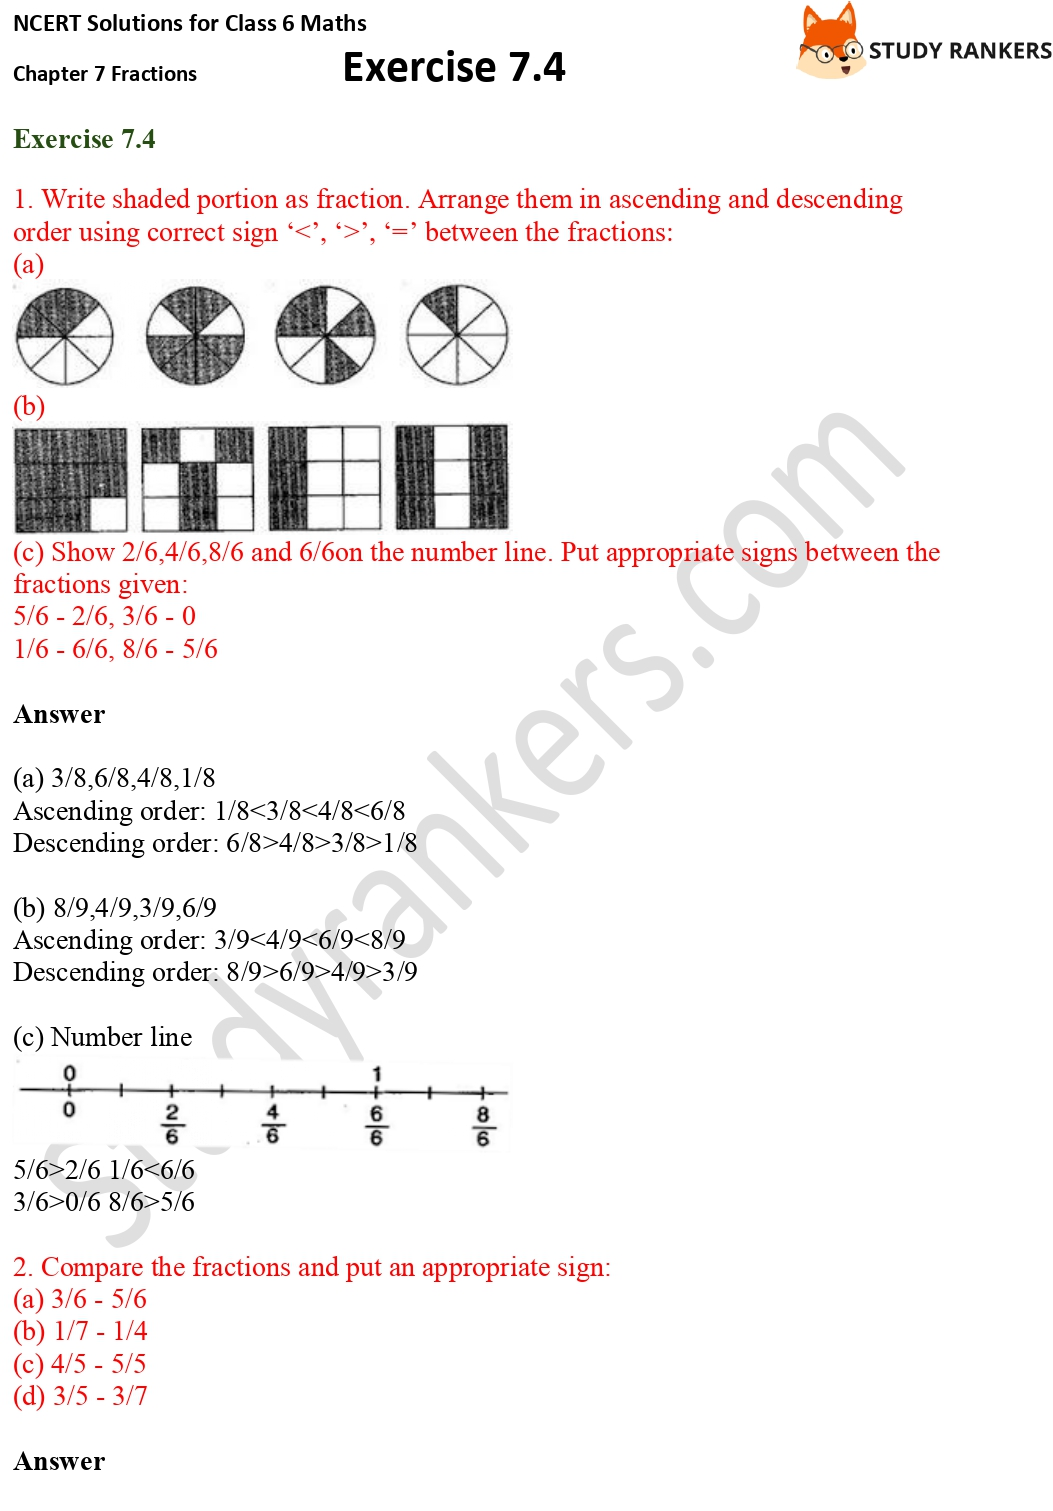 NCERT Solutions for Class 6 Maths Chapter 7 Fractions Exercise 7.4 Part 1